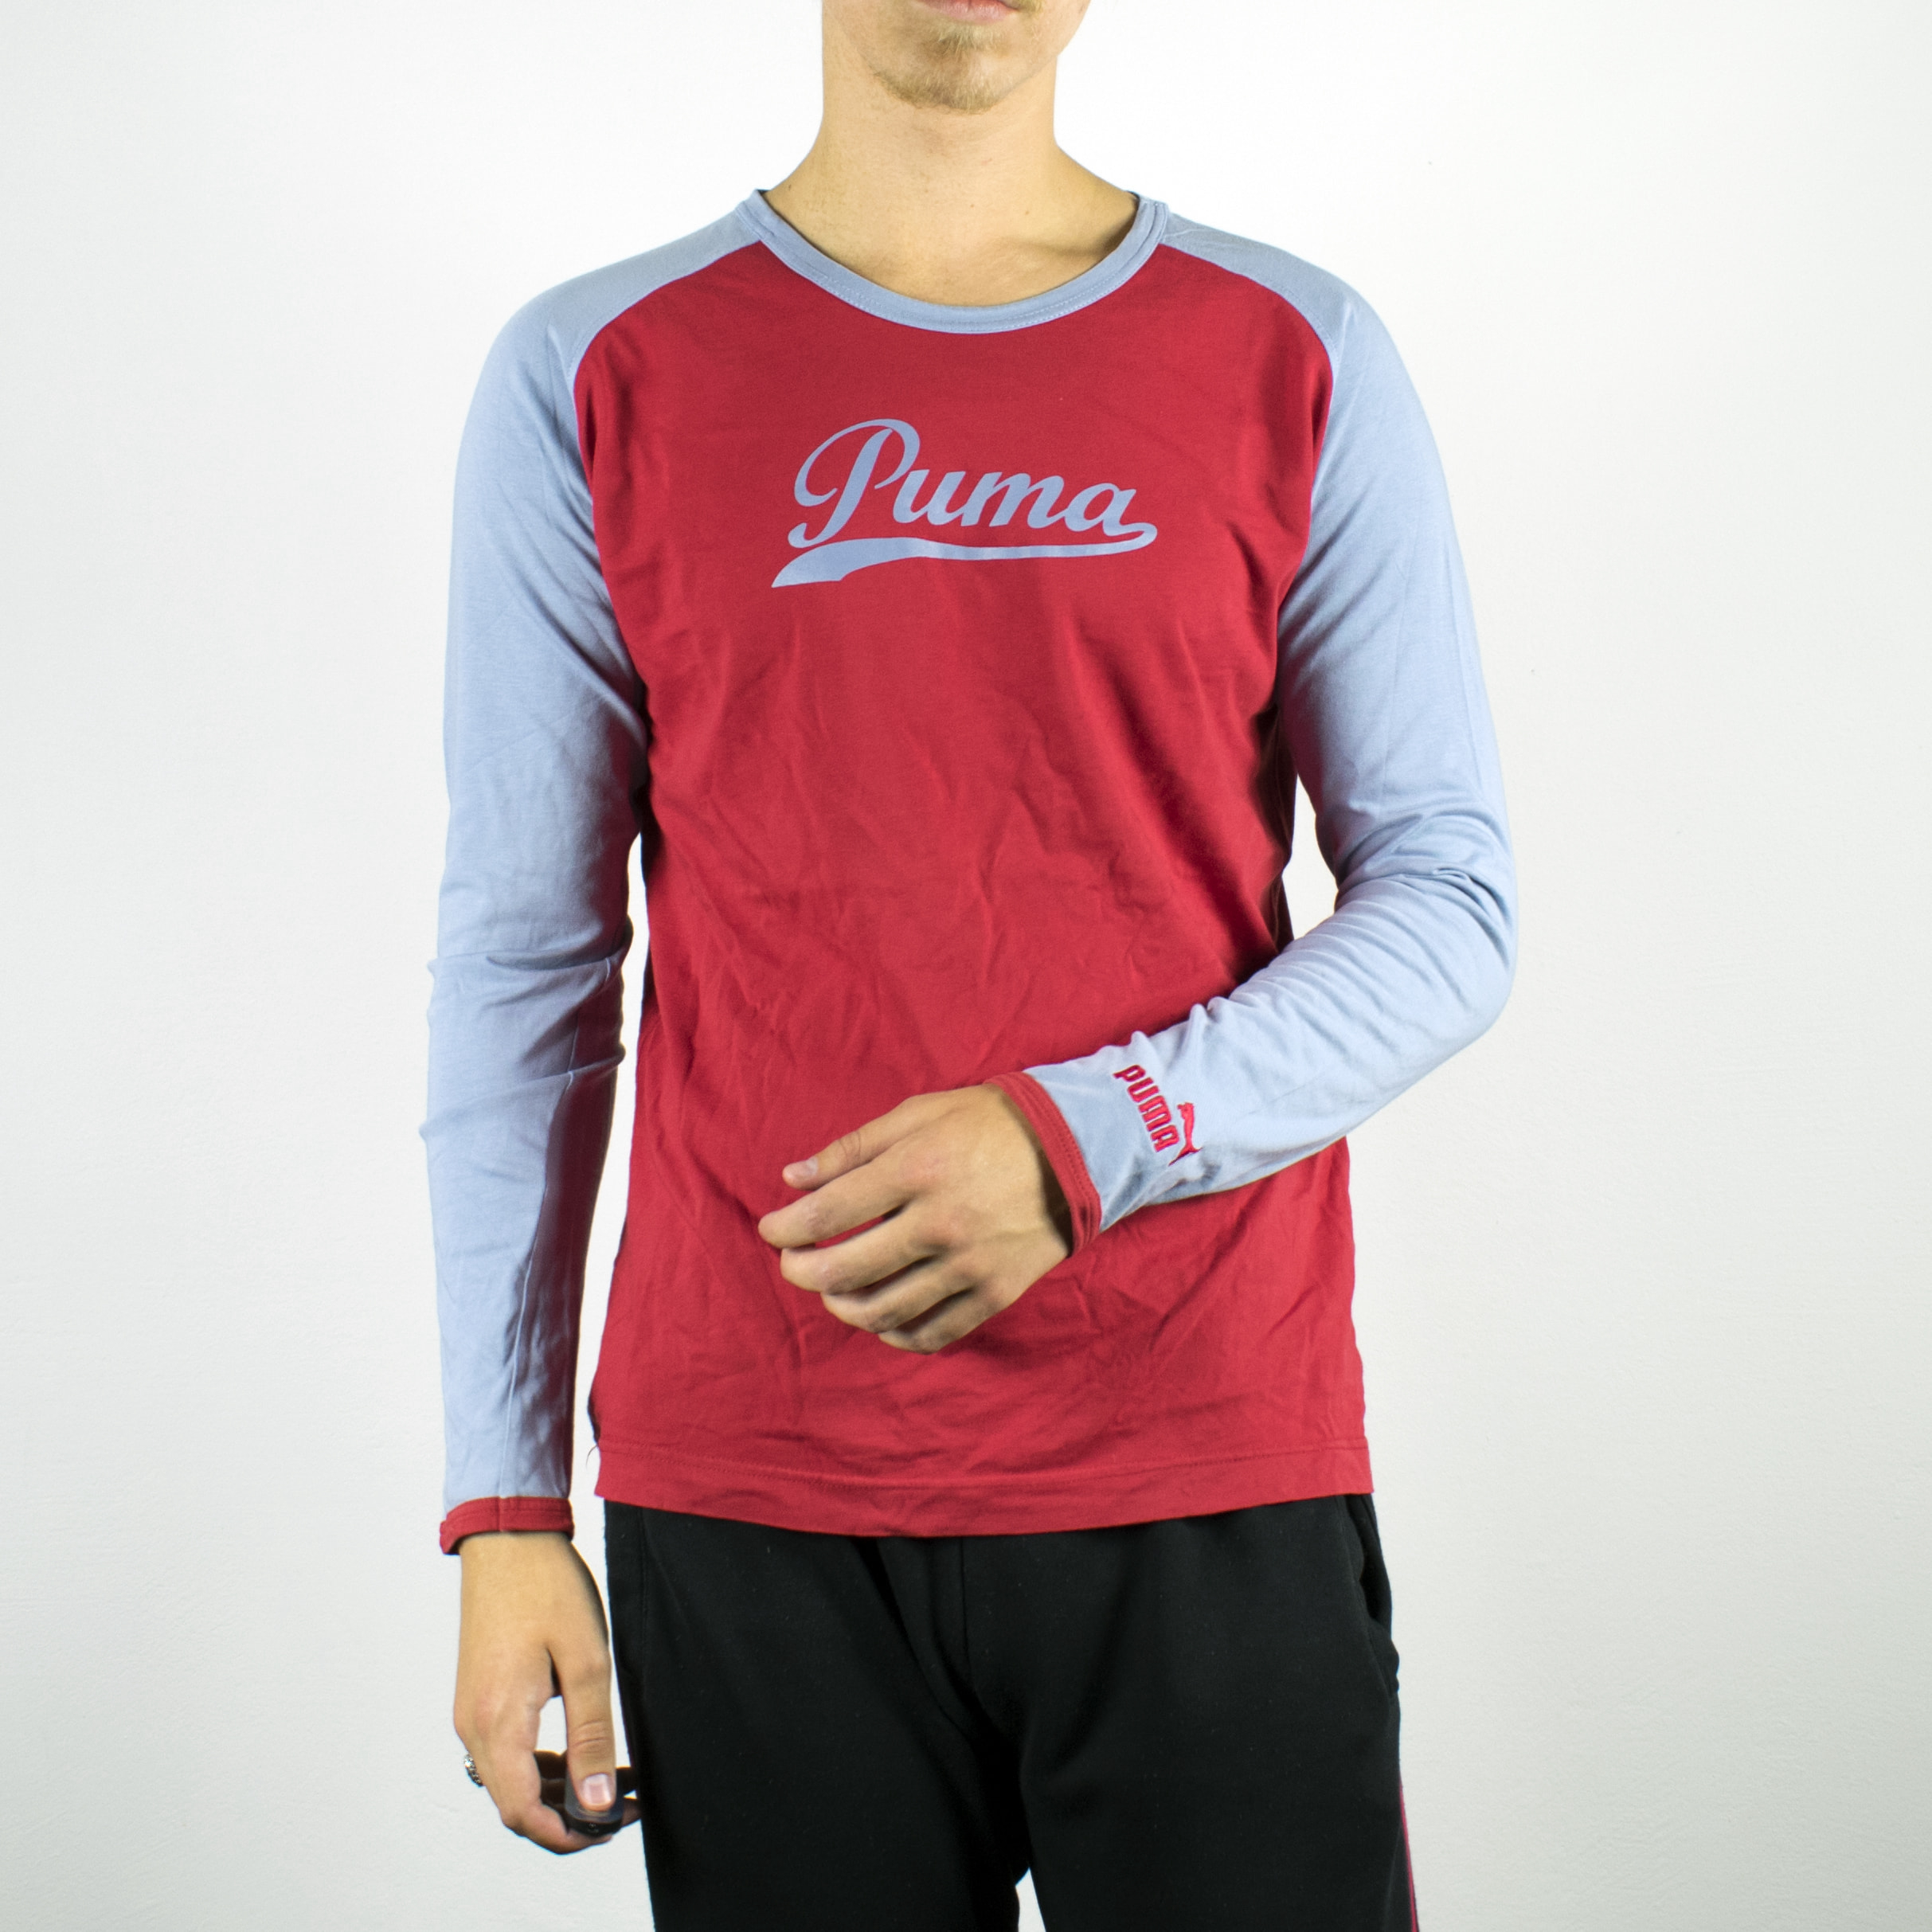 Unisex Vintage Puma sweatshirt in red and light blue has a spellout on the front size L